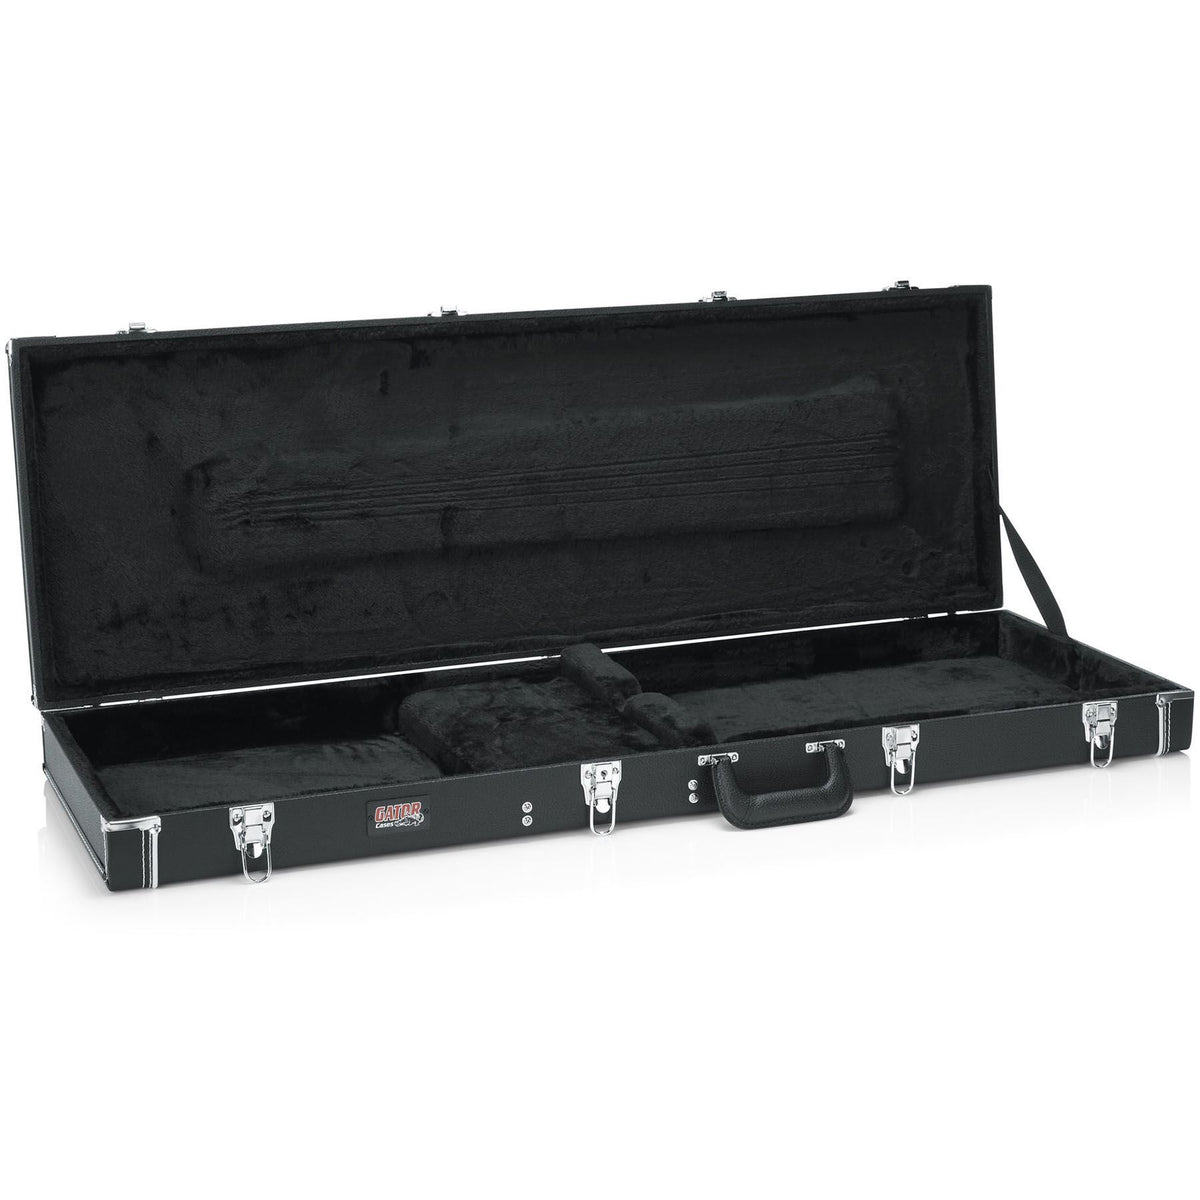 Gator Cases Deluxe Wood Case for Dean Edge 5 Bass Guitars